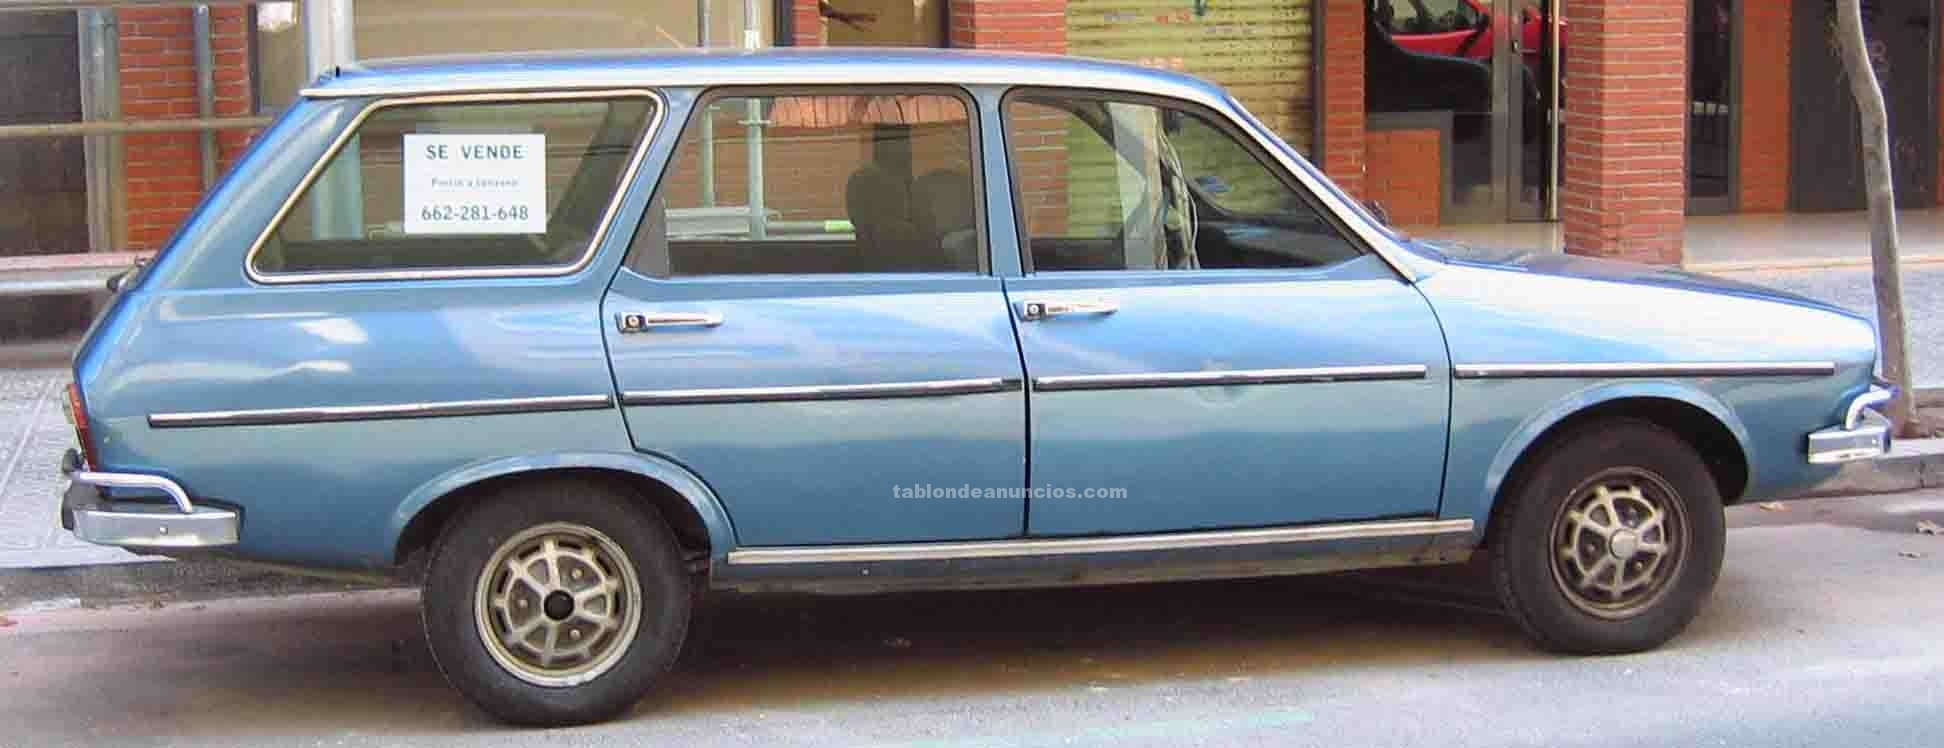 Toyota Corolla Le >> TABLÓN DE ANUNCIOS - Renault 12 ts familiar impecable azul ...